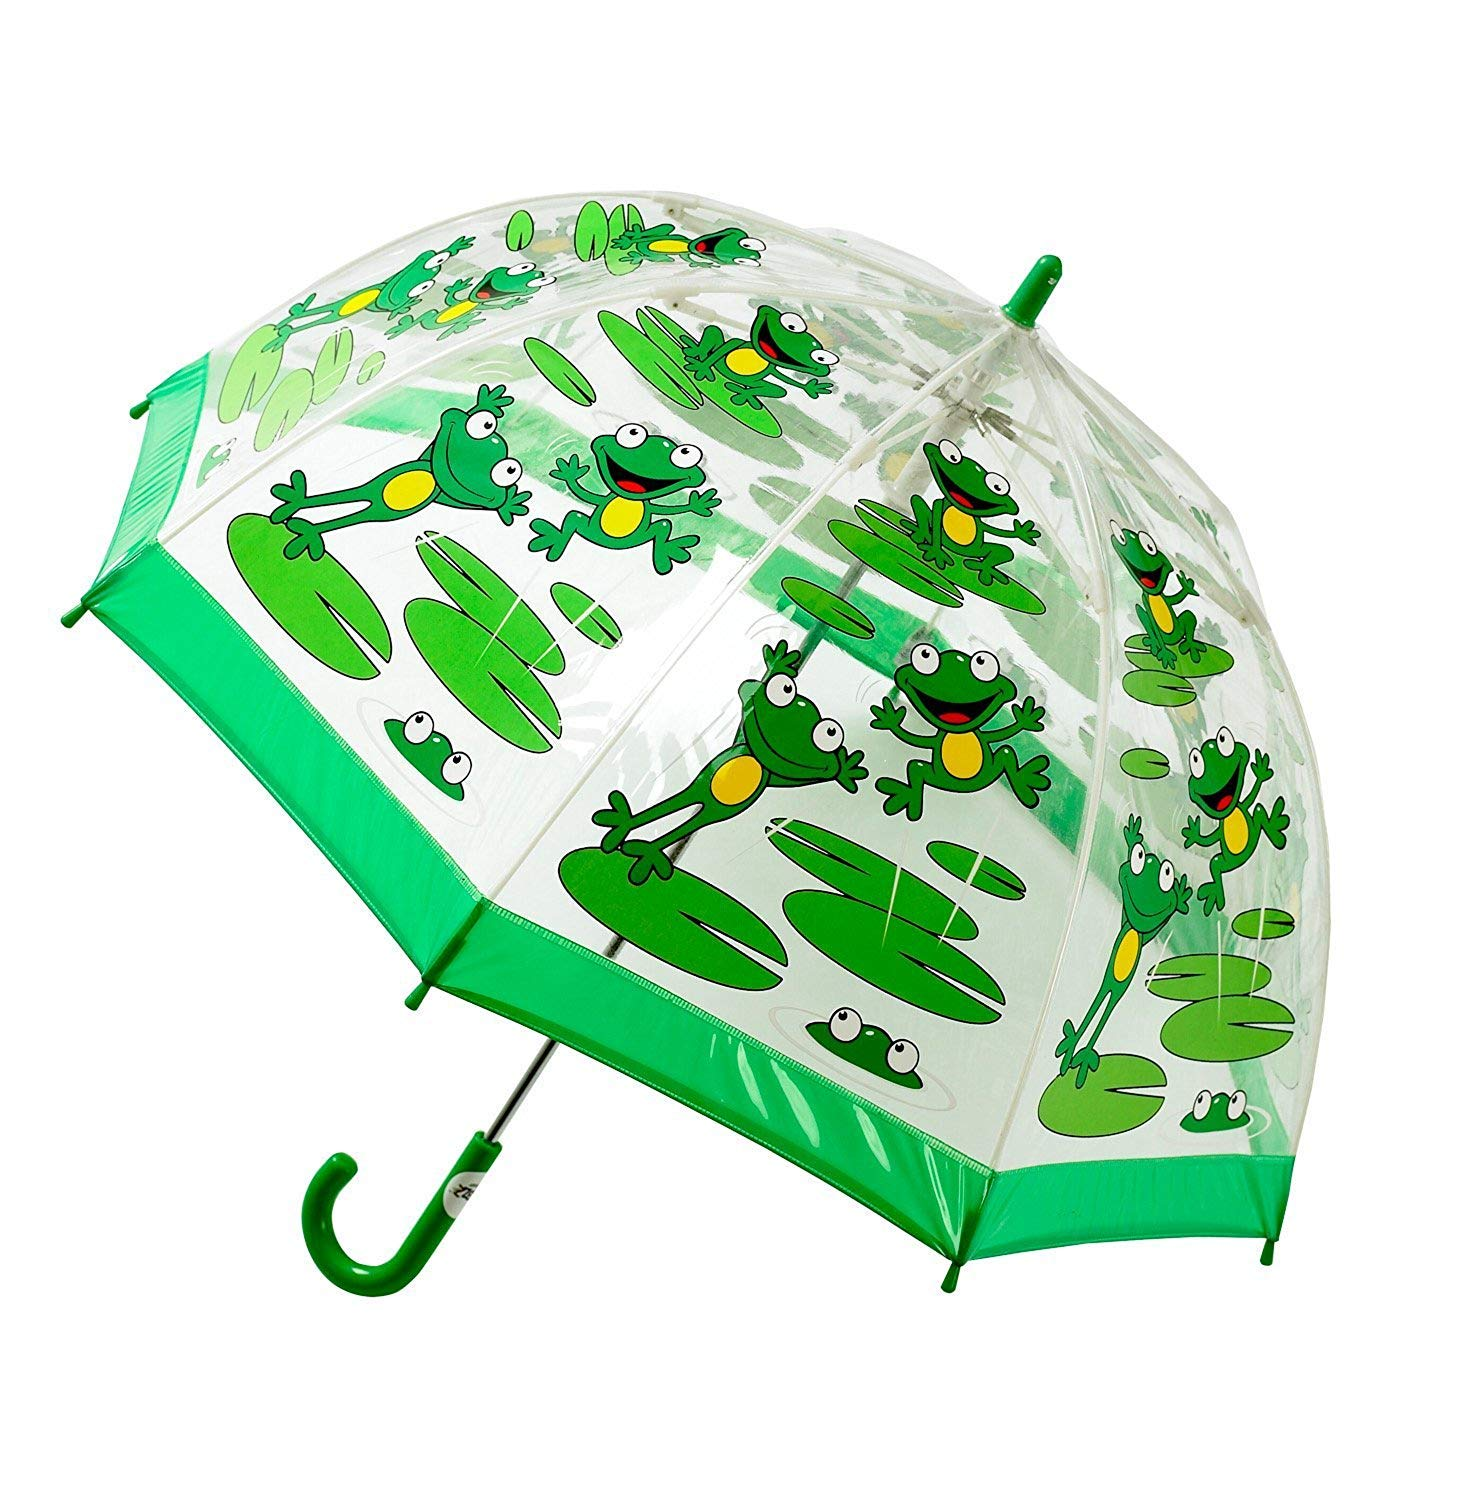 Bugzz Clear PVC Umbrella BUGZZ KIDS STUFF